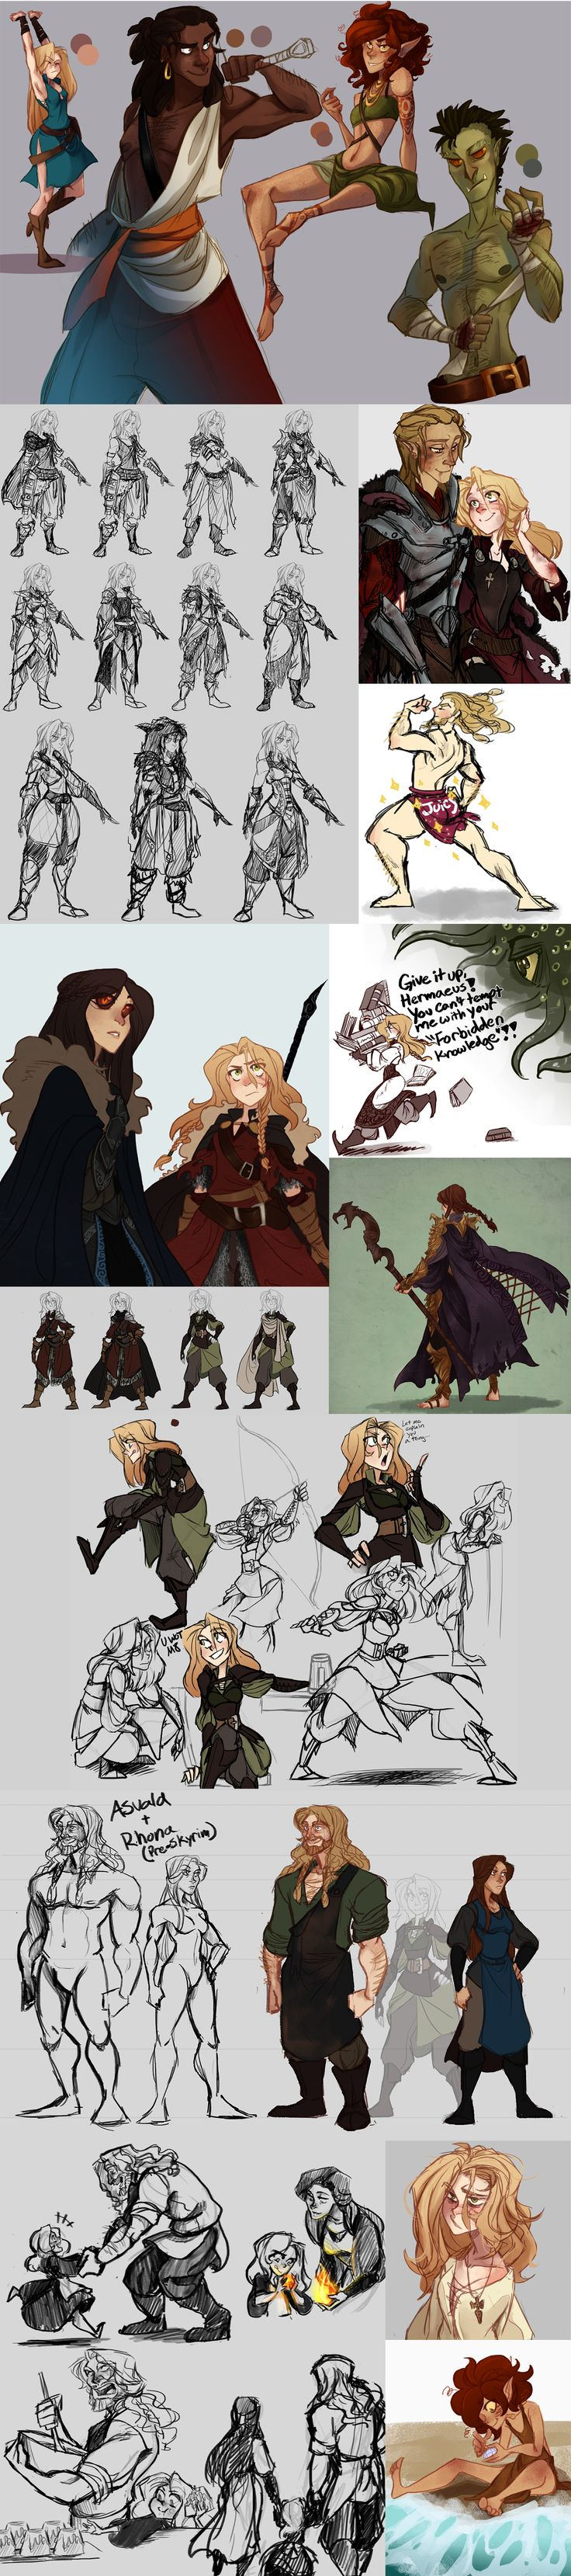 Skyrim Character Design Ideas : Best ideas about sexy drawings on pinterest forms of